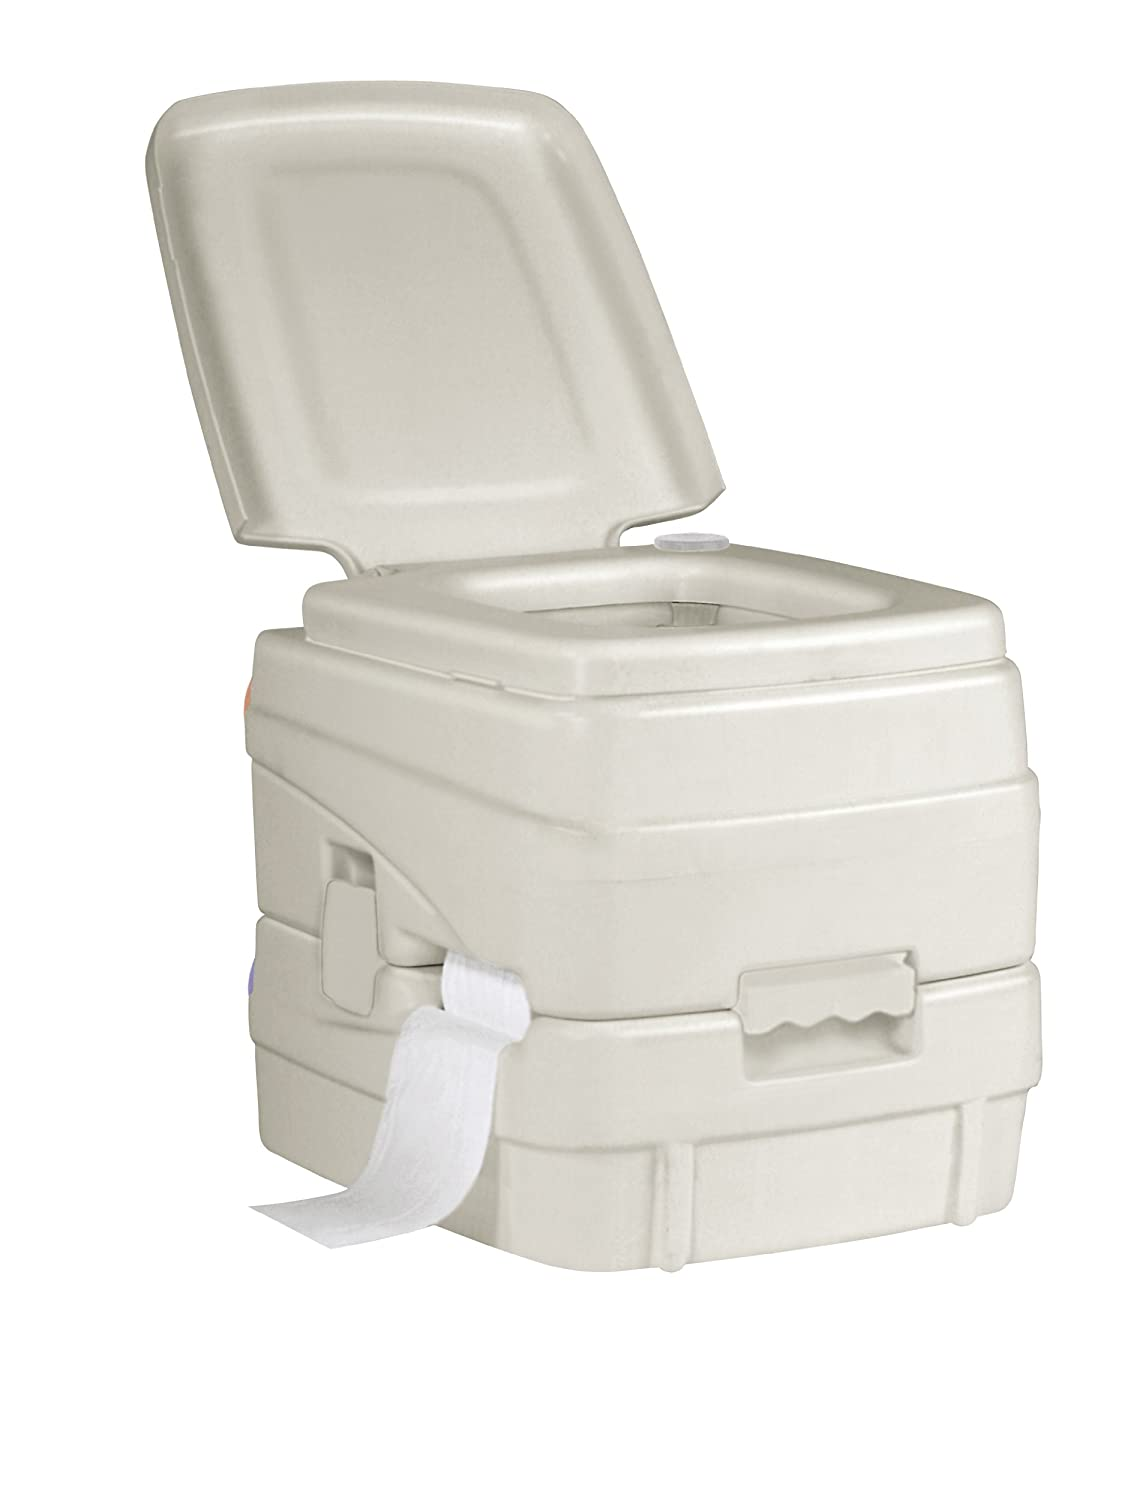 LaPlaya Outdoorproducts 1520 Toilettes de camping Blanc 43, 6 x 36, 5 x 38 cm 960110